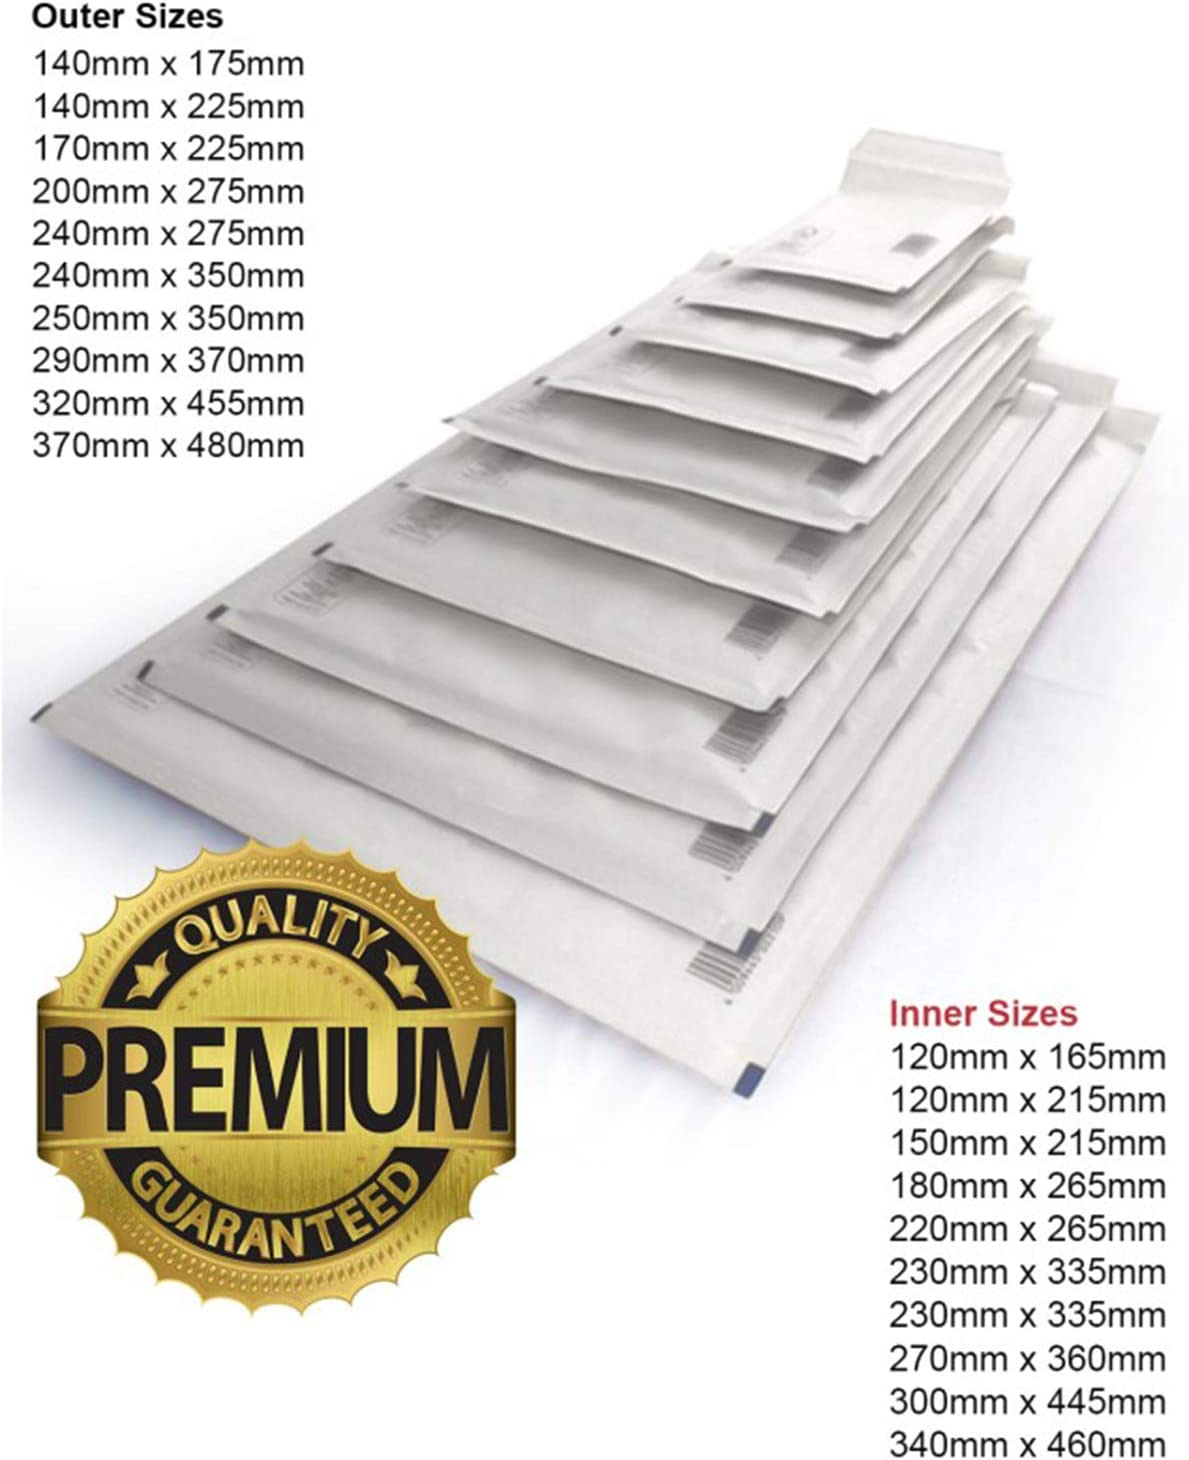 50 X Premium Quality White Padded Bubble Envelopes Waterproof Mailing Bags 240mm x 275mm